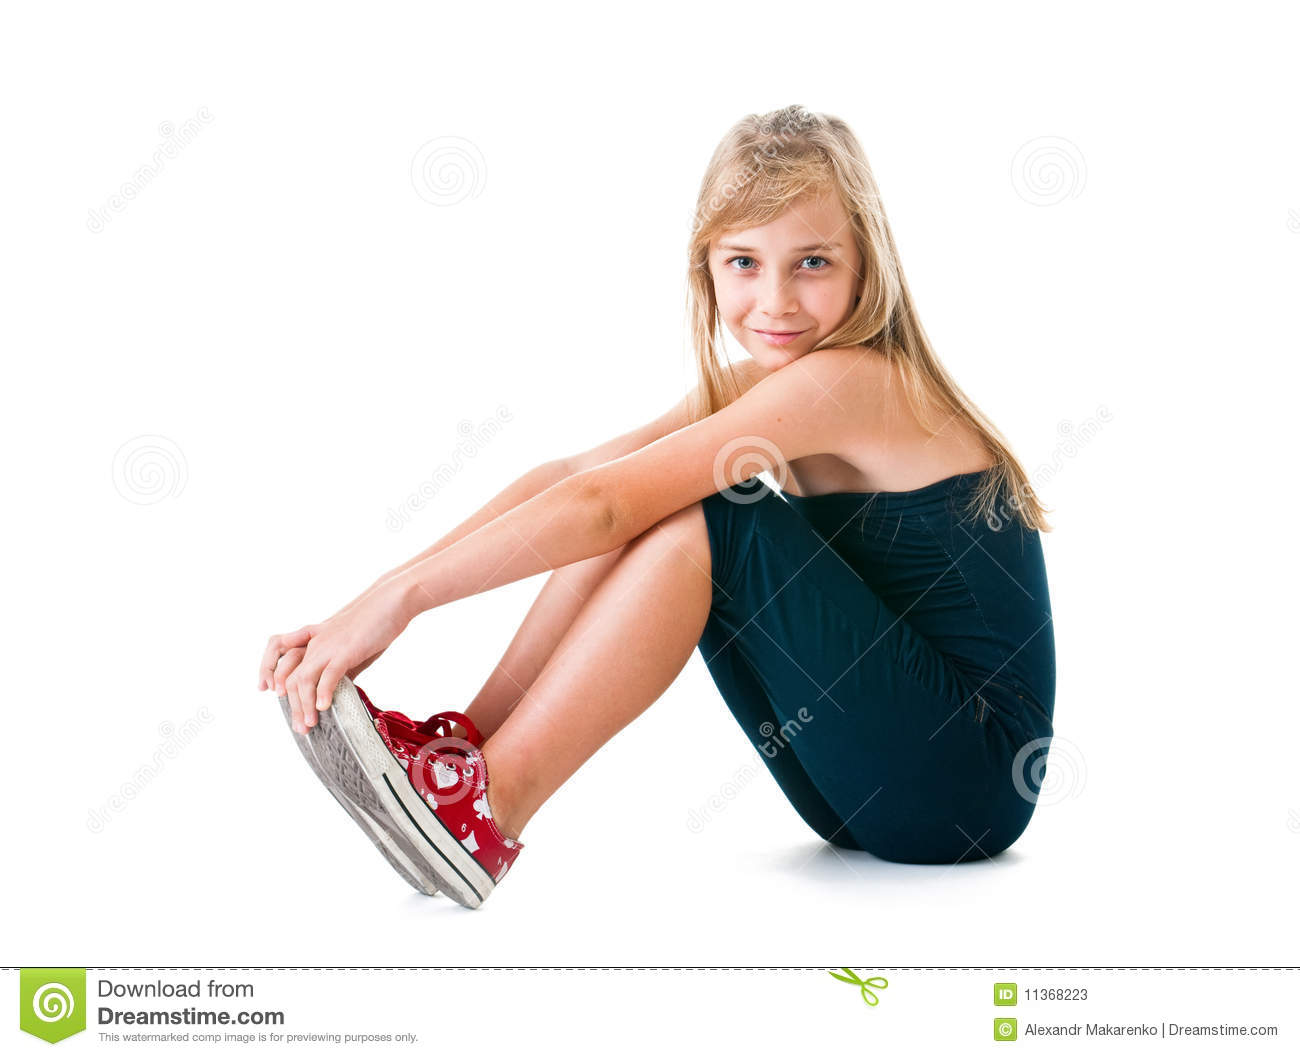 The Girl The Teenager On A White Background. Stock Photos ...